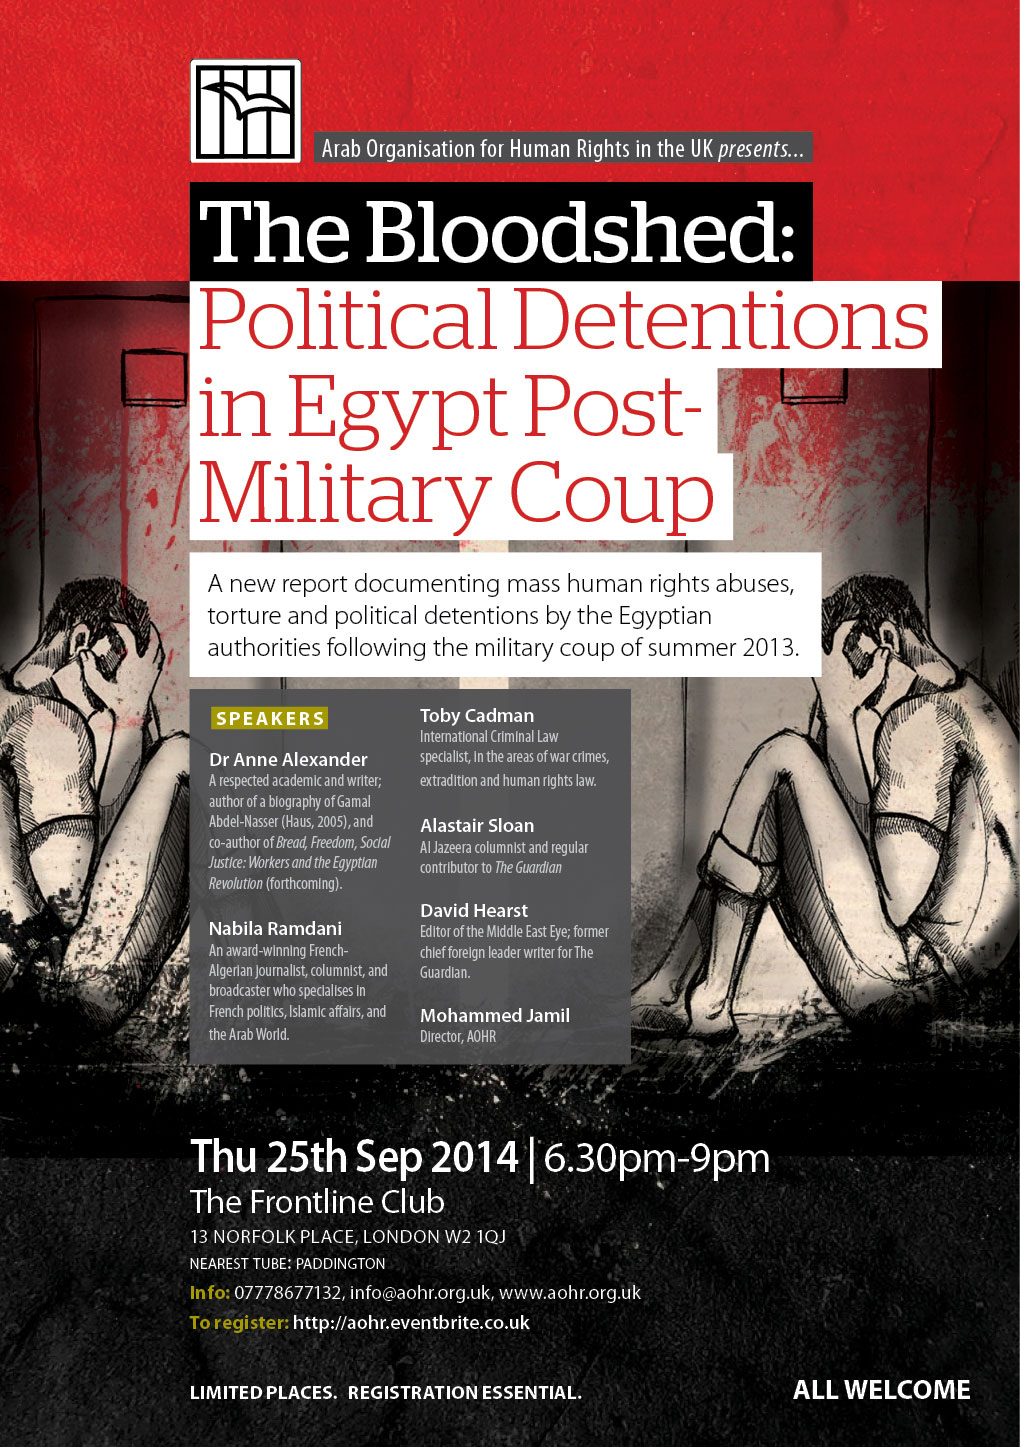 THE BLOODSHED: Political Detentions in Egypt Post-Military Coup